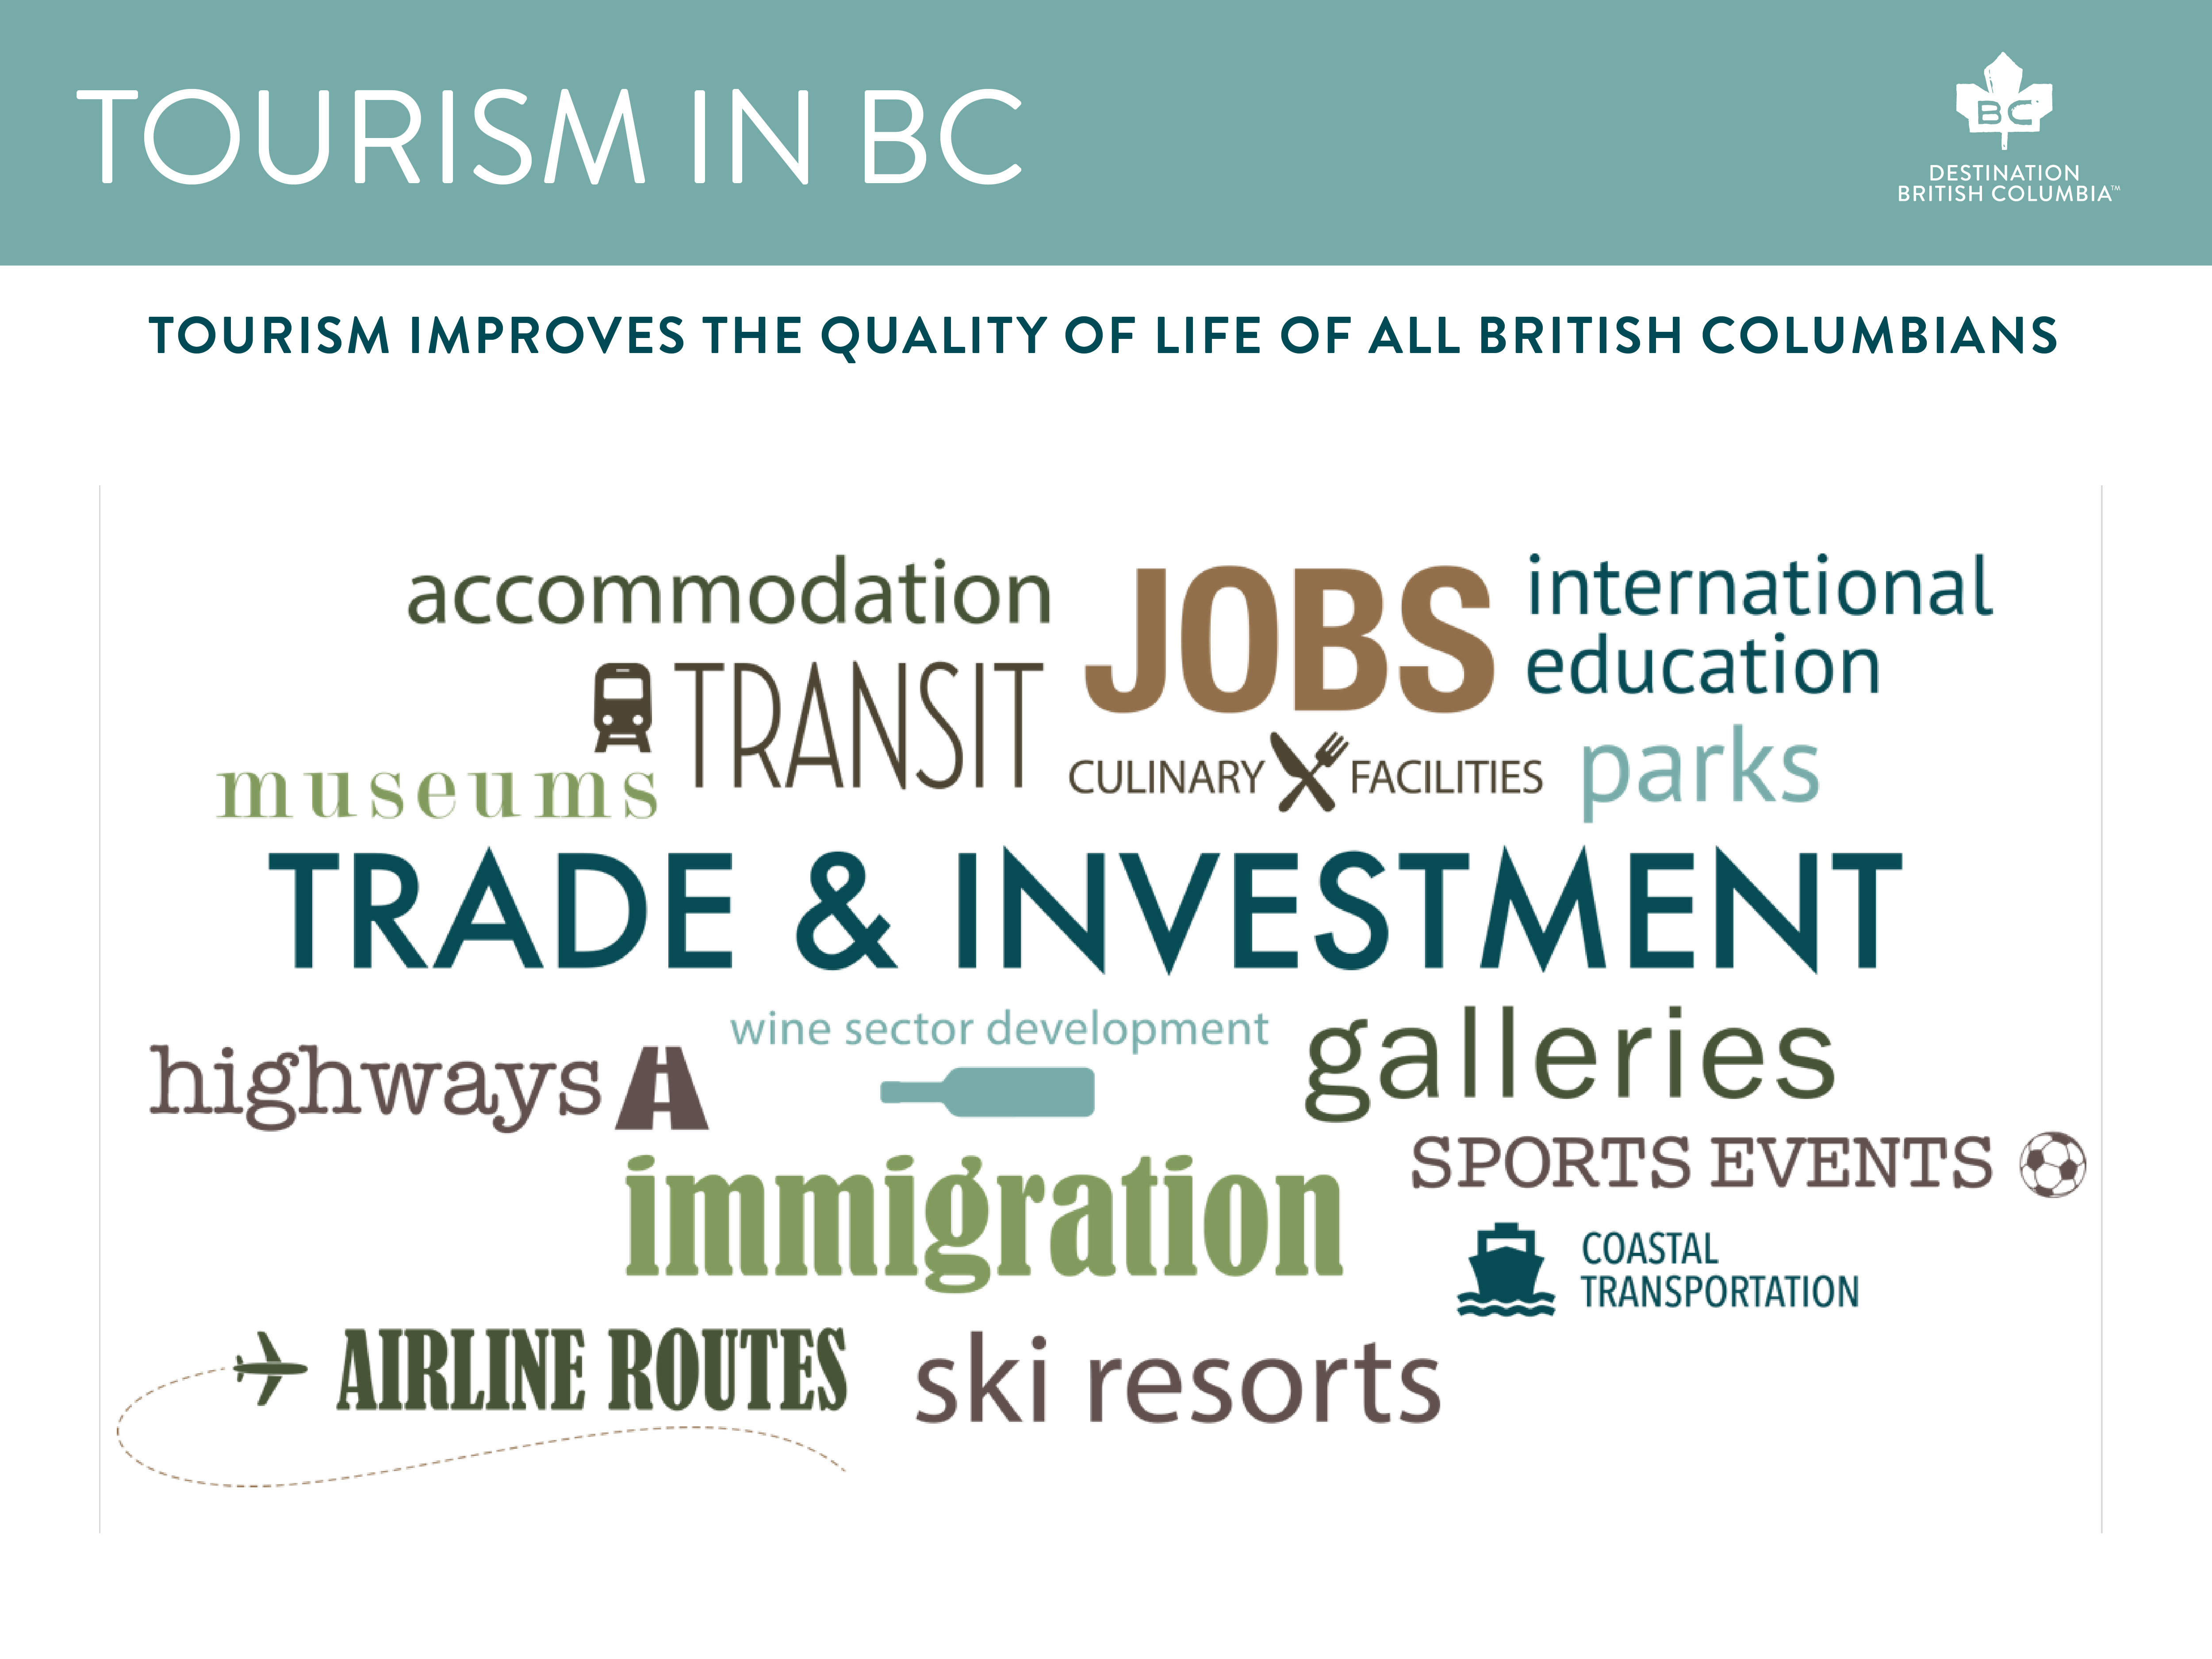 Tourism in BC